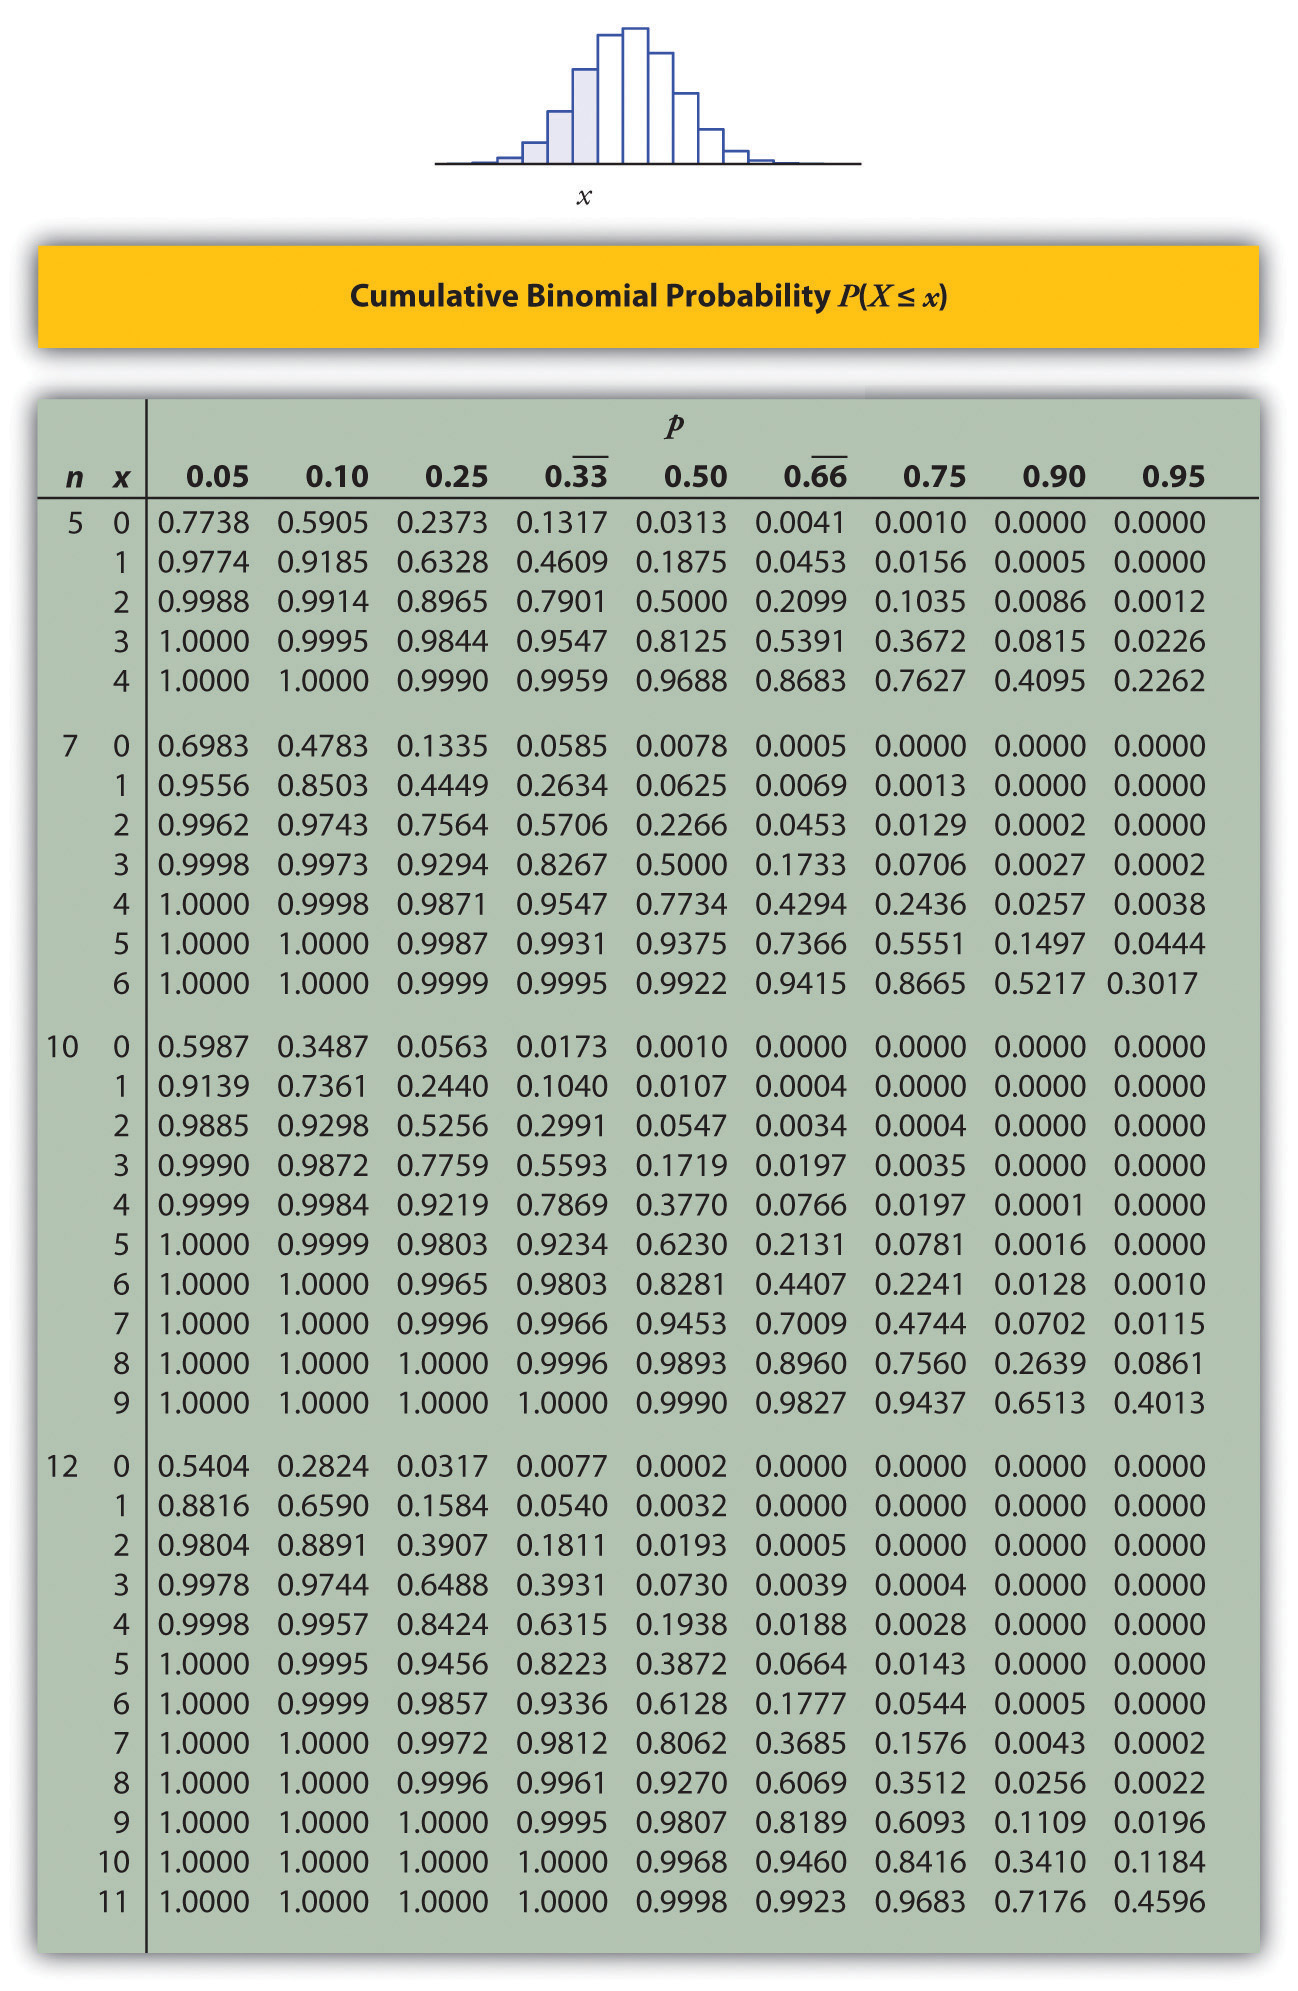 Binomial Probability Distribution Table for P(X)